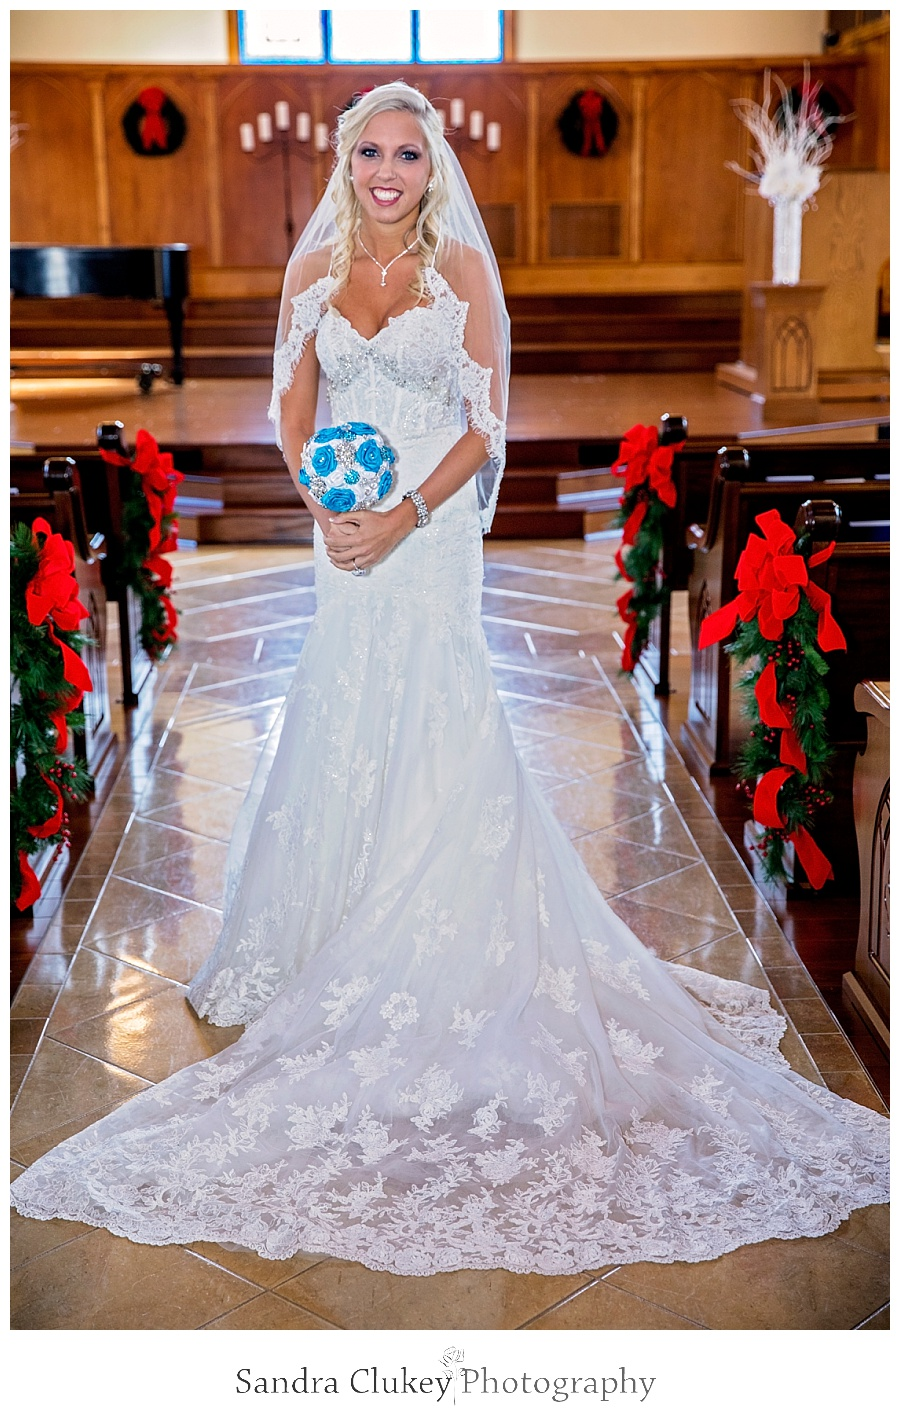 Dazzling bride in chapel